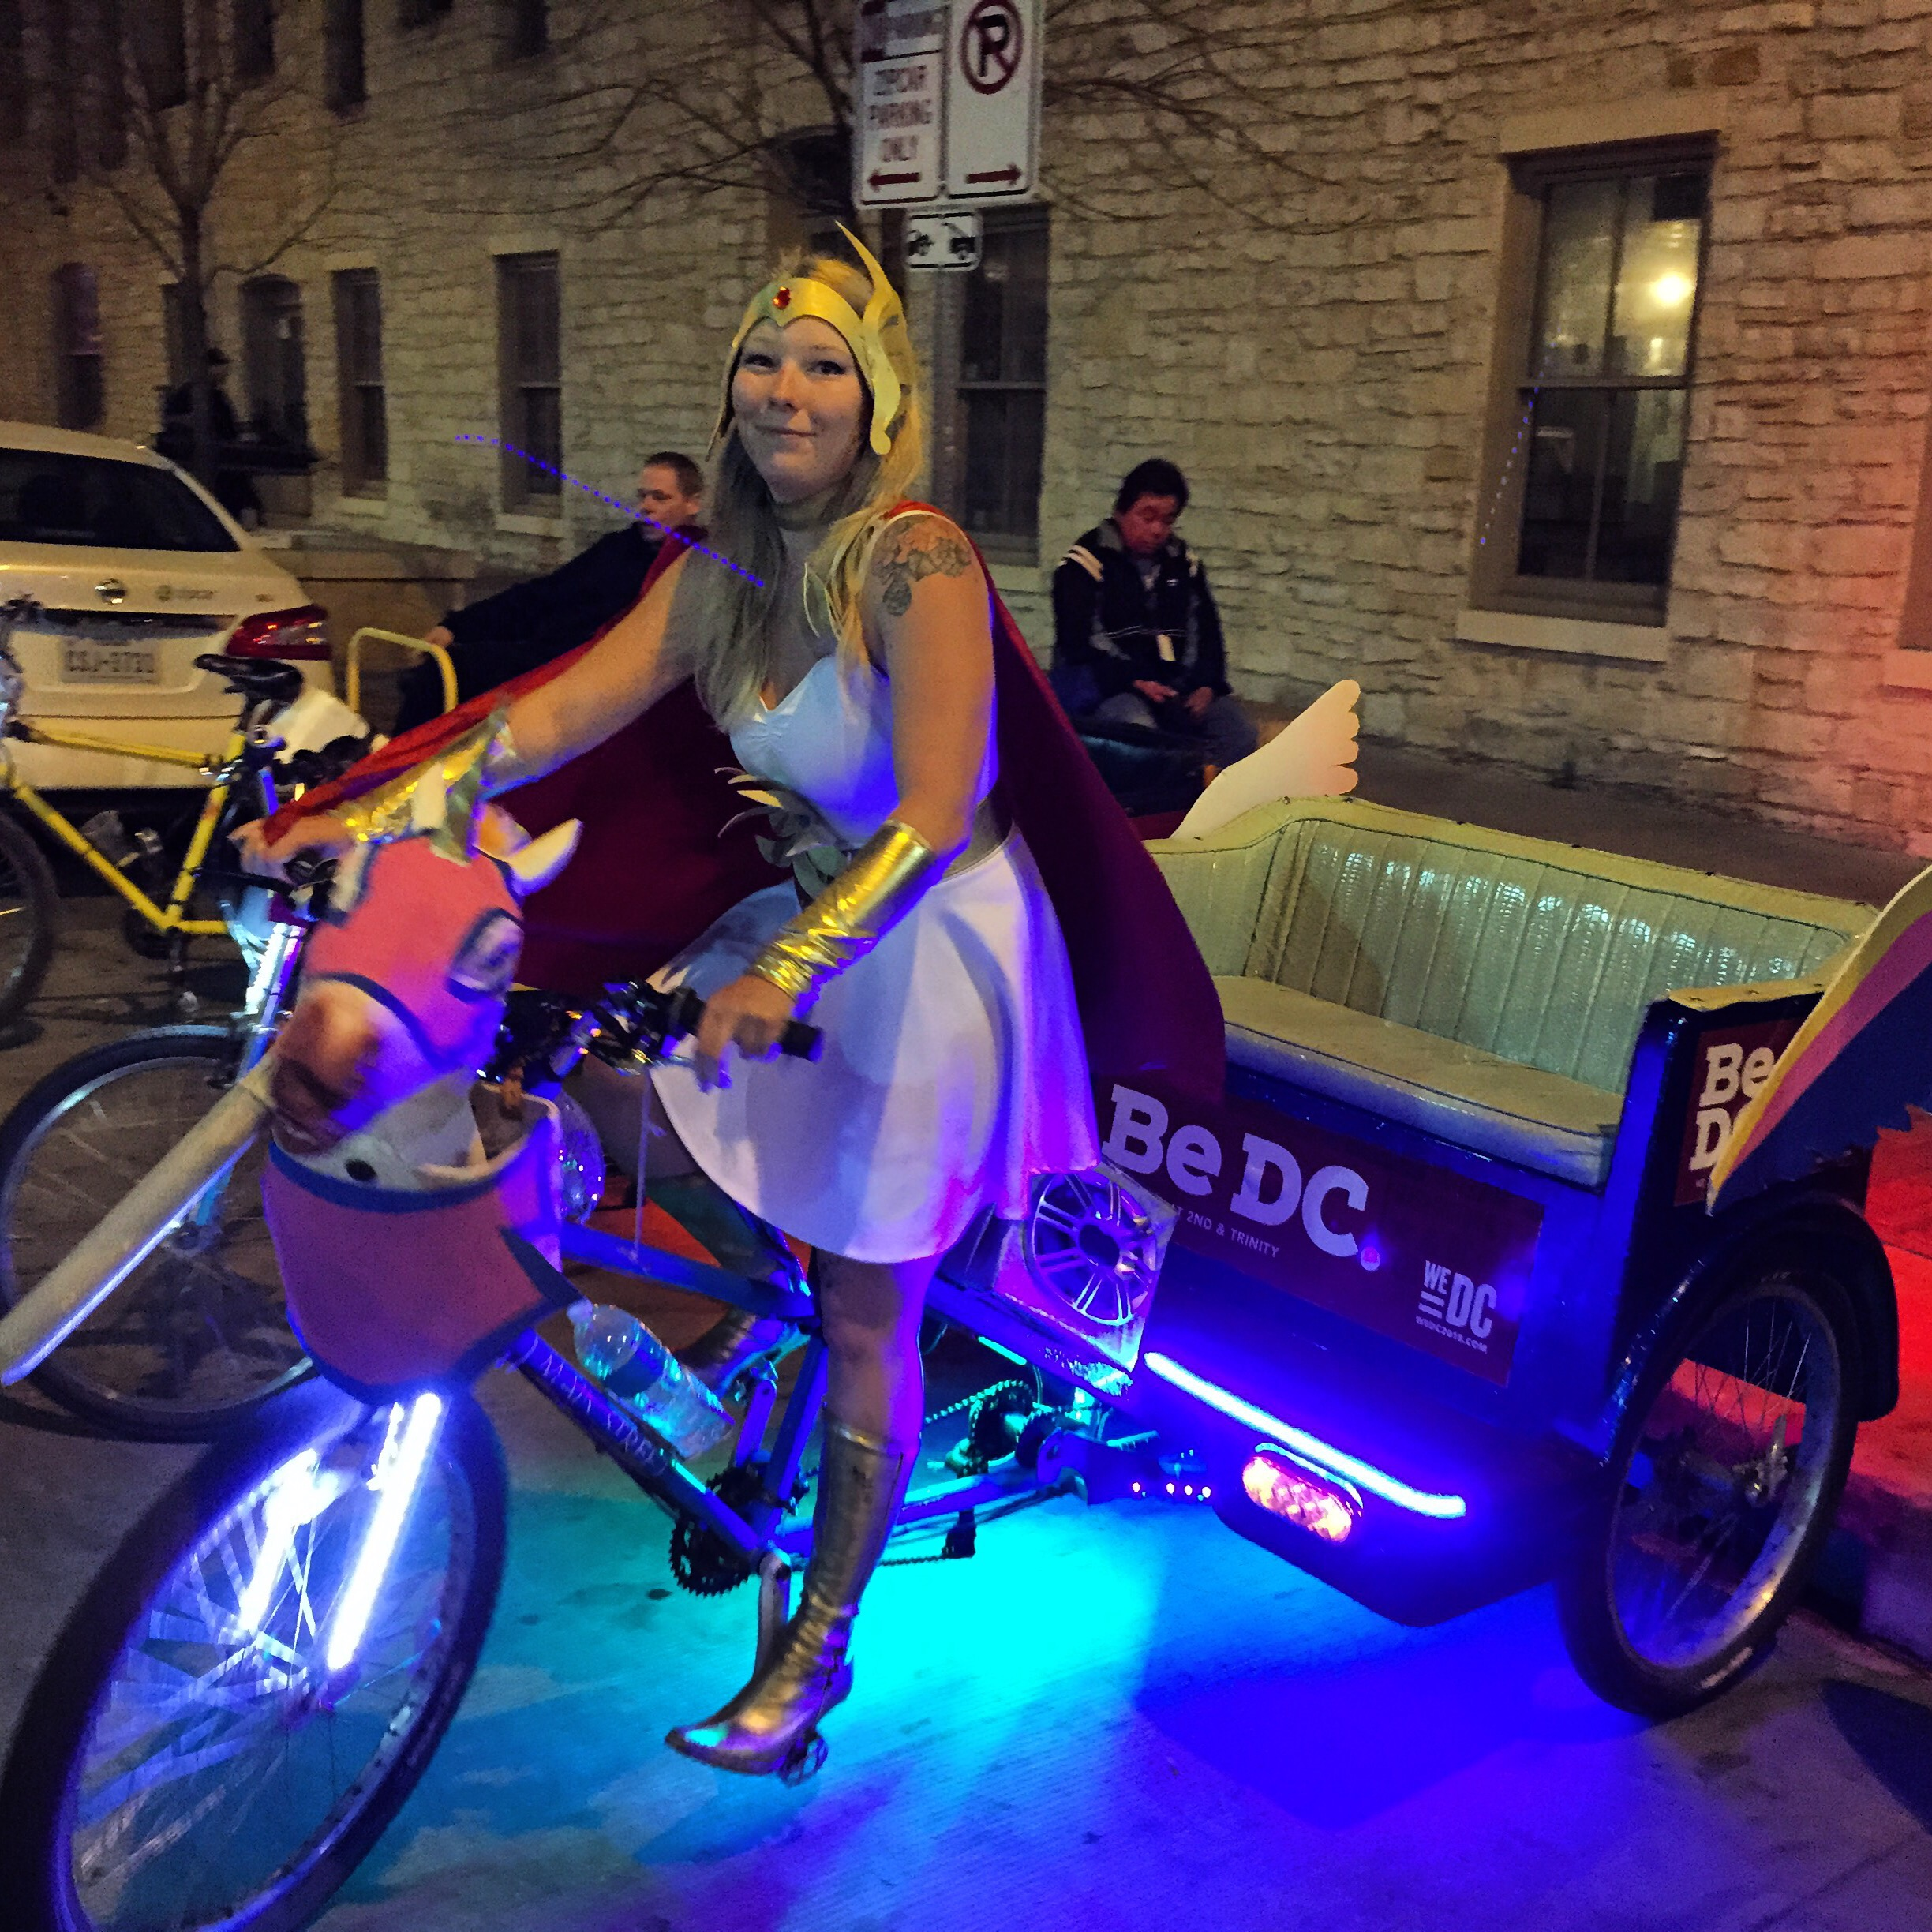 Fantasy taxi bike at SXSW